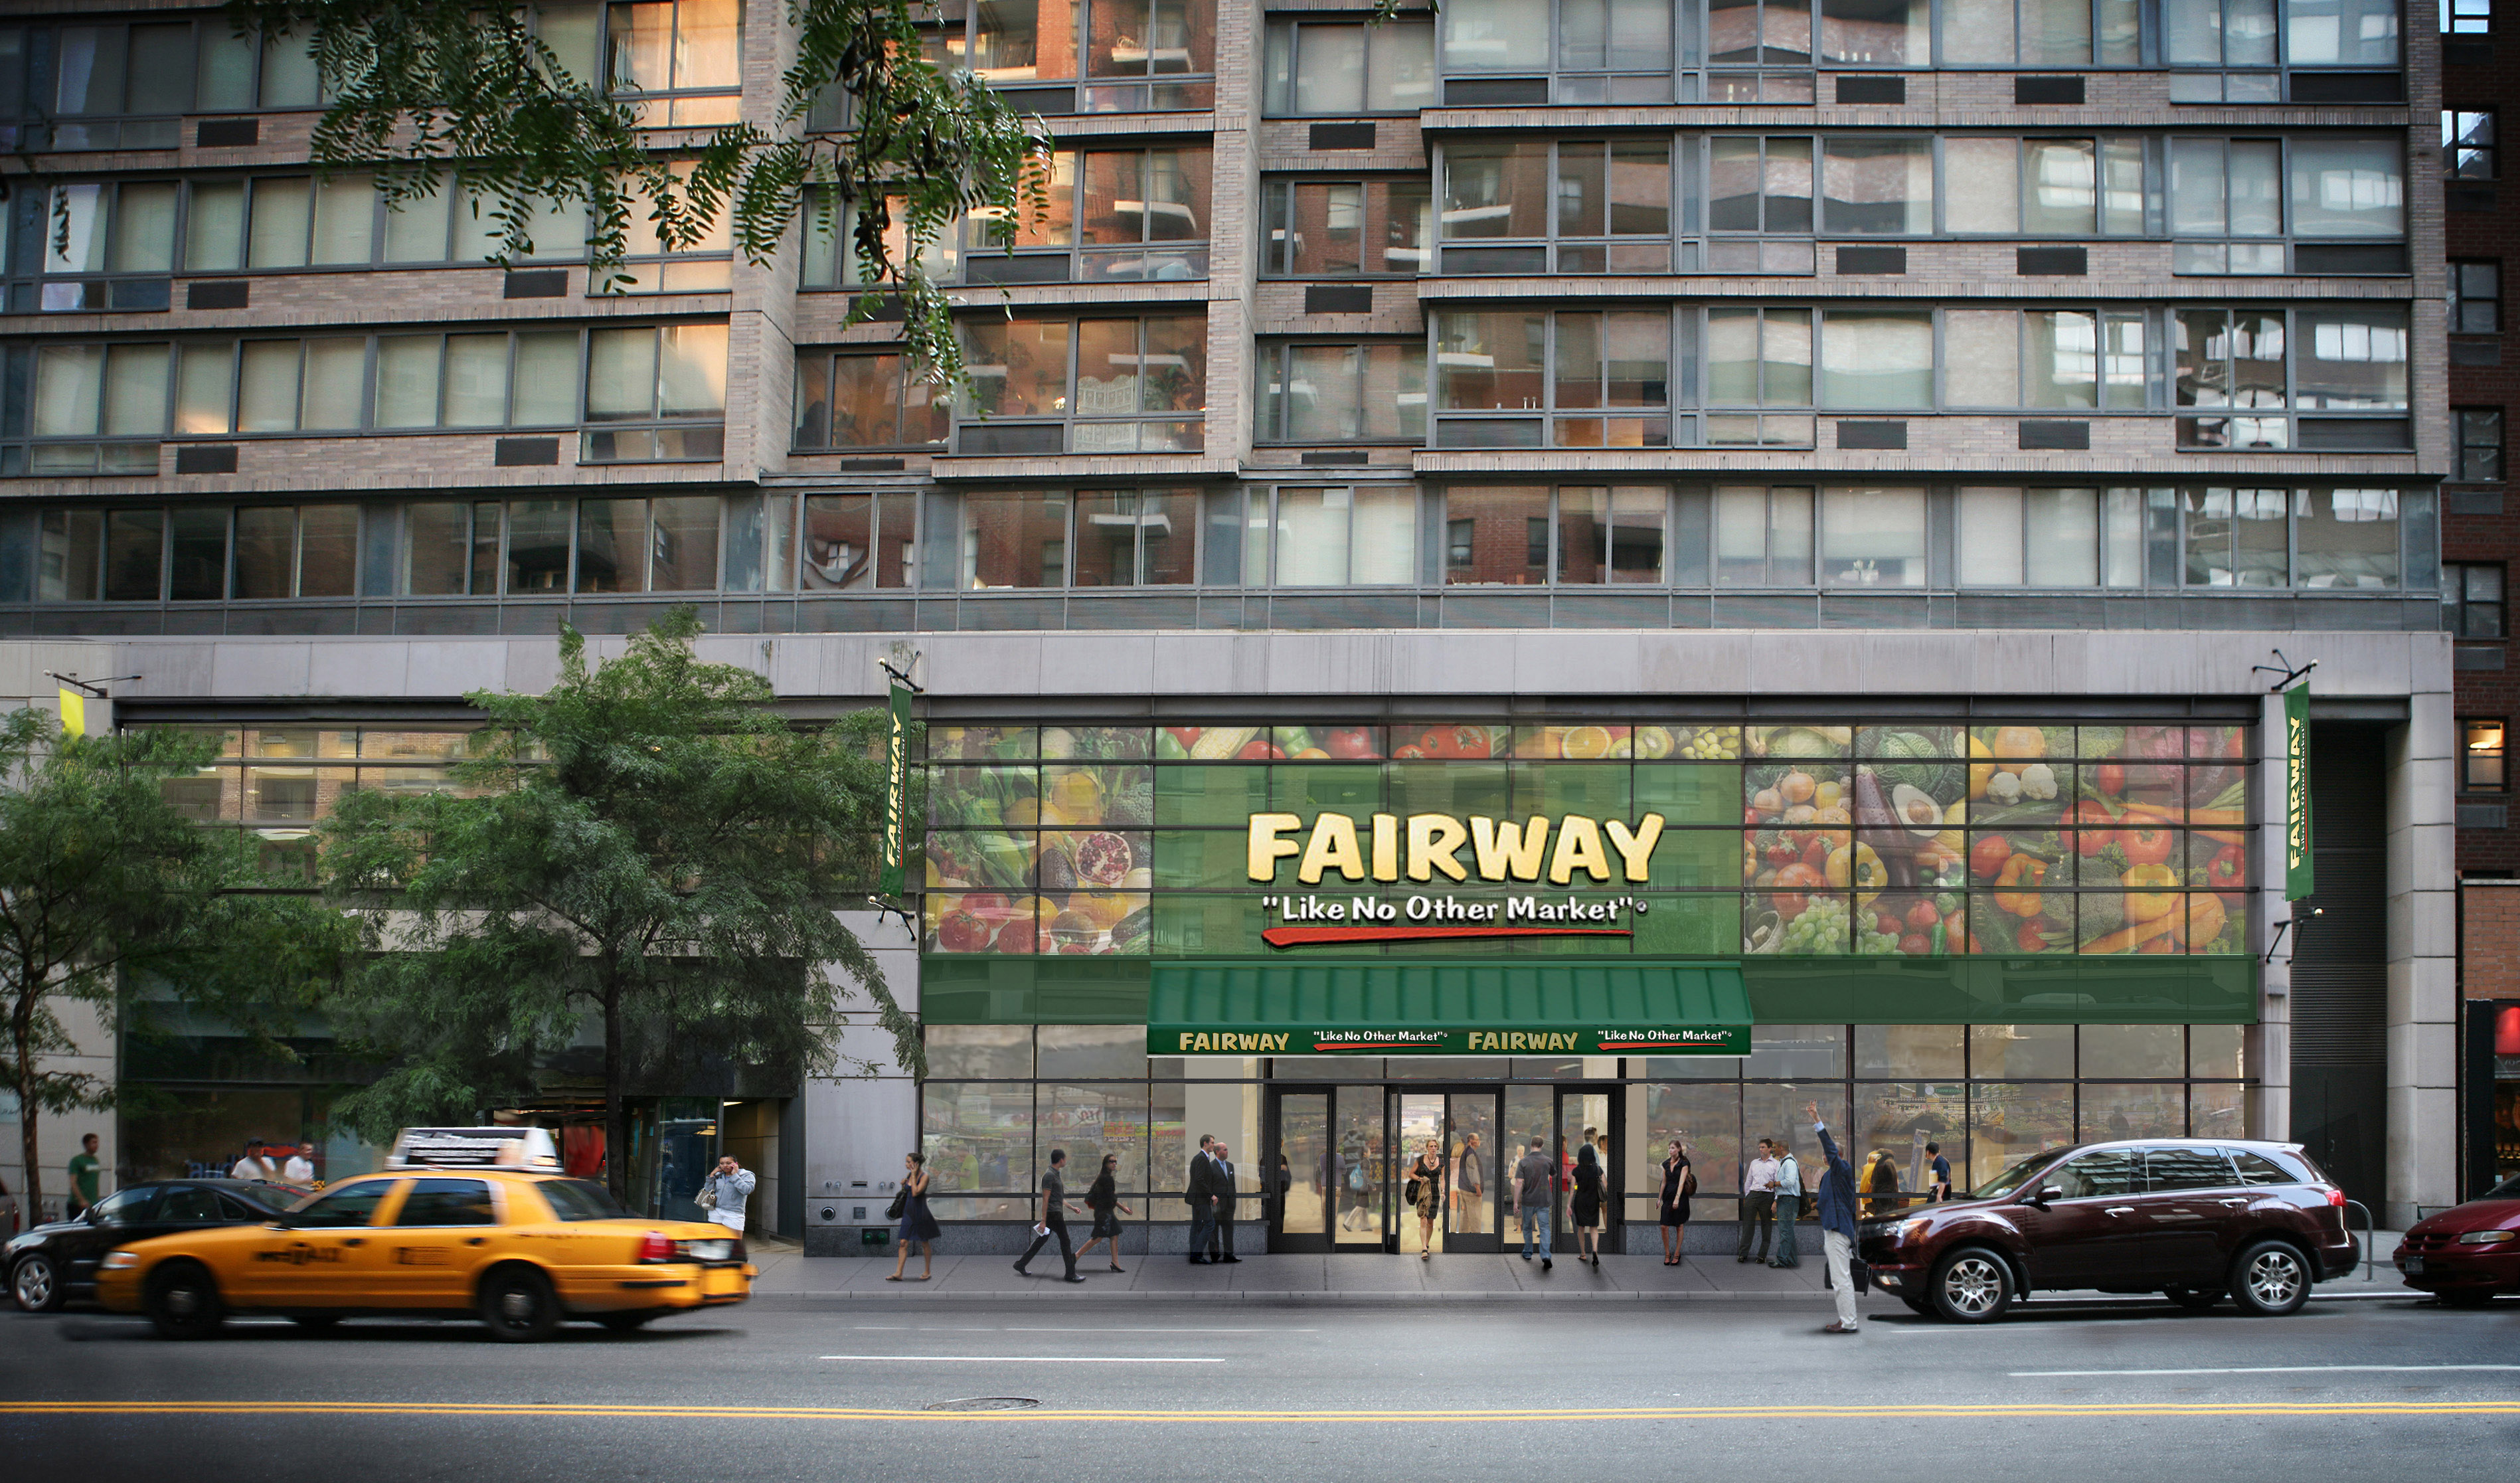 Fairway Shop Whole Foods Laura B Weiss